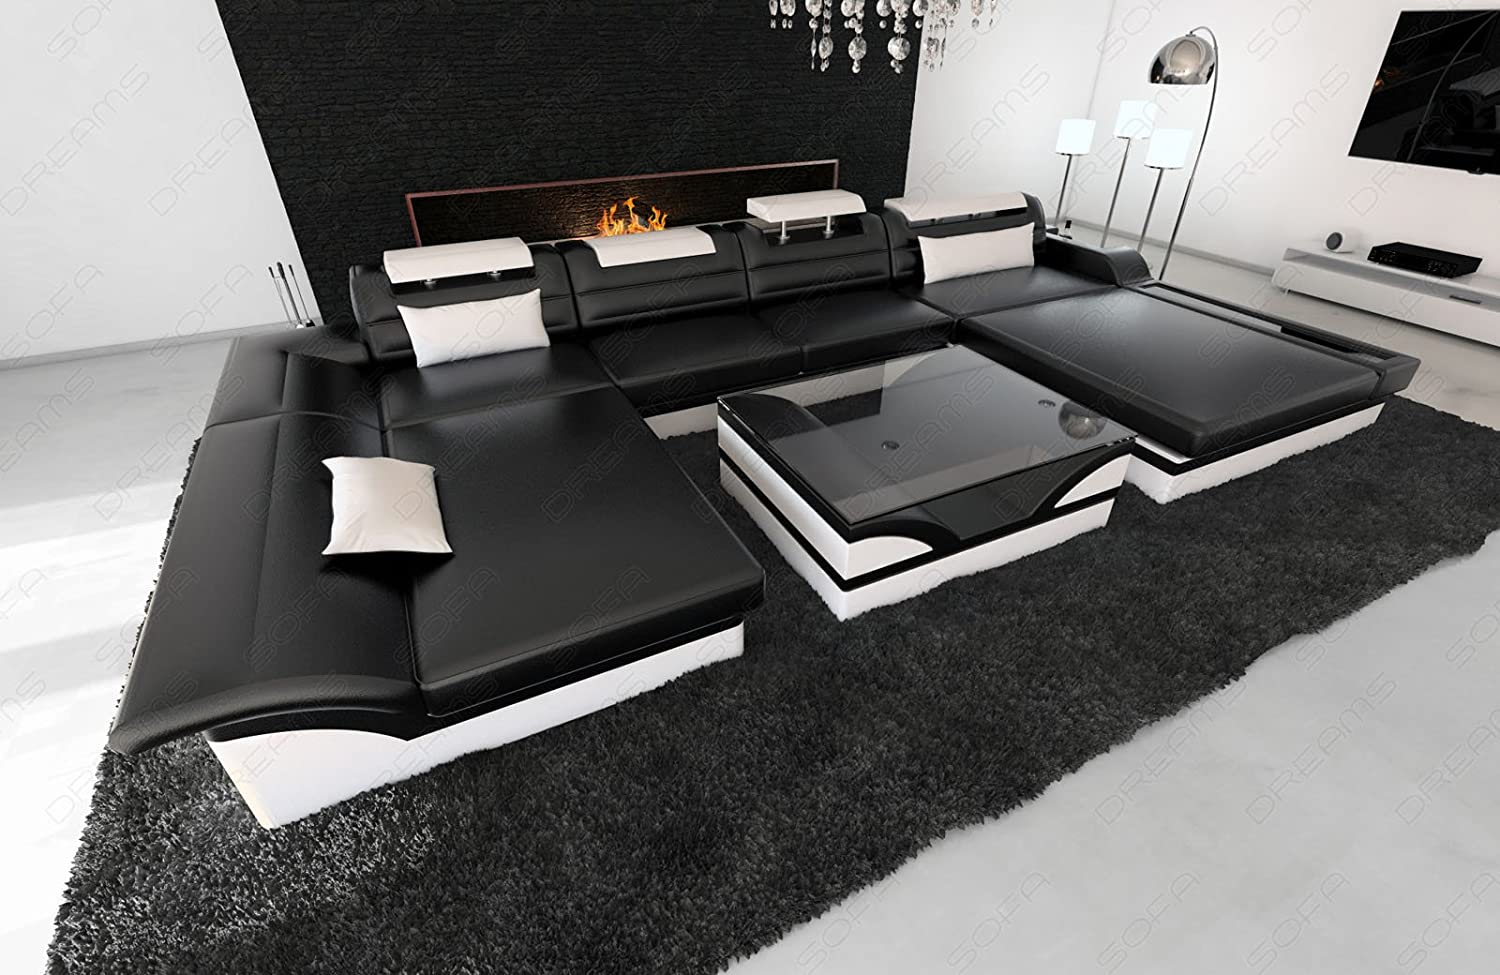 sofa u form gallery of photo of sofadreams berlin germany. Black Bedroom Furniture Sets. Home Design Ideas